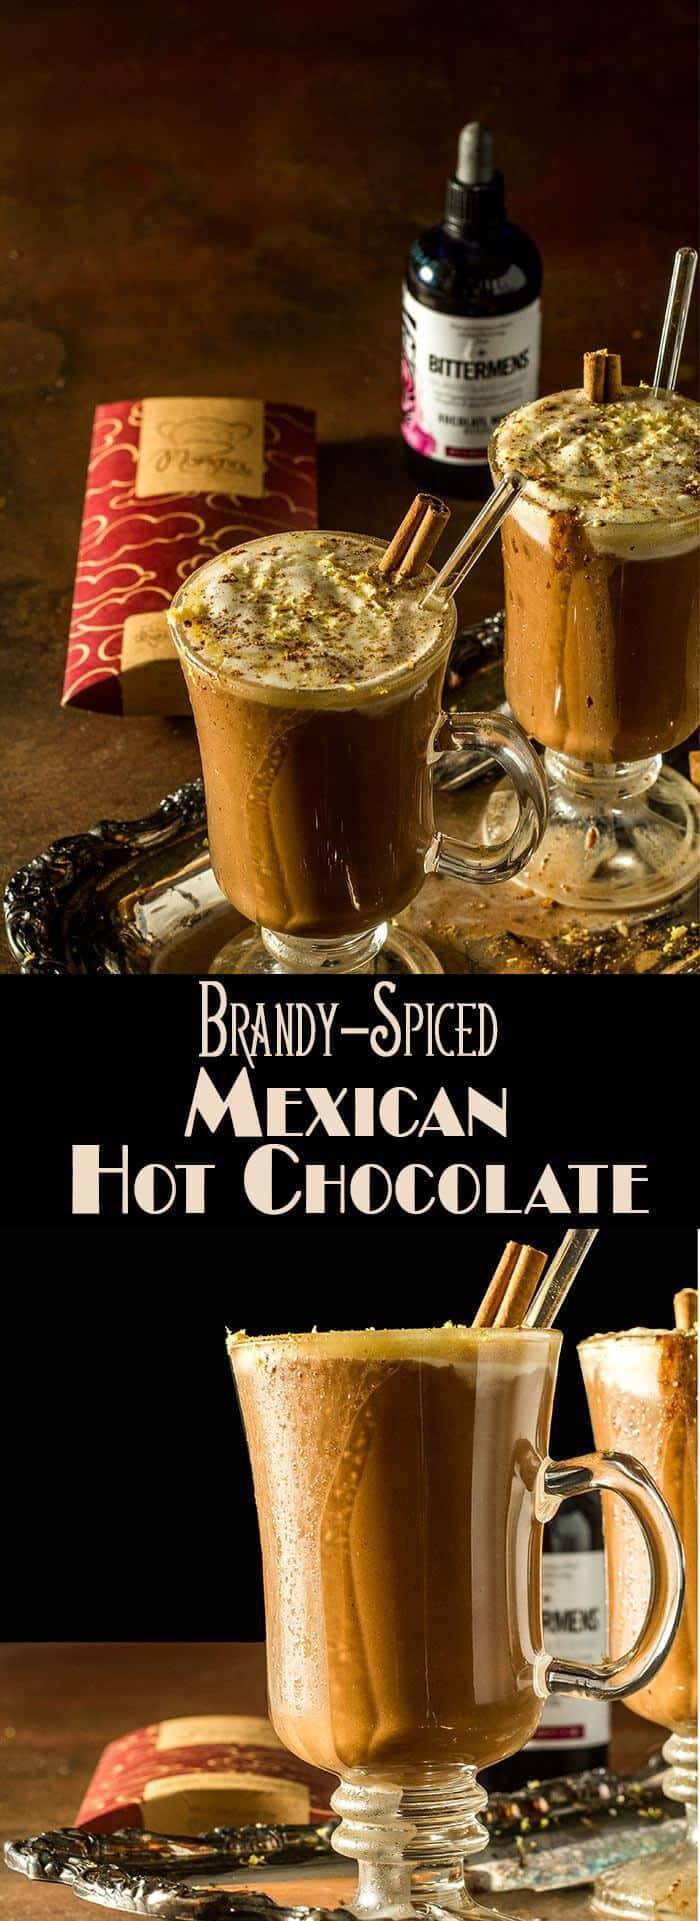 Luxurious dark chocolate, cinnamon, and a bit of heat make this Brandy-Spiked Mexican Hot Chocolate a decadent treat perfect on a winter's night in front of a roaring fire! #cocktails #mixology #adulthotchocolate #spikedhotchocolate #wintercocktails #Christmascocktails #Bittermens #Mozna #VirtualCookieExchange